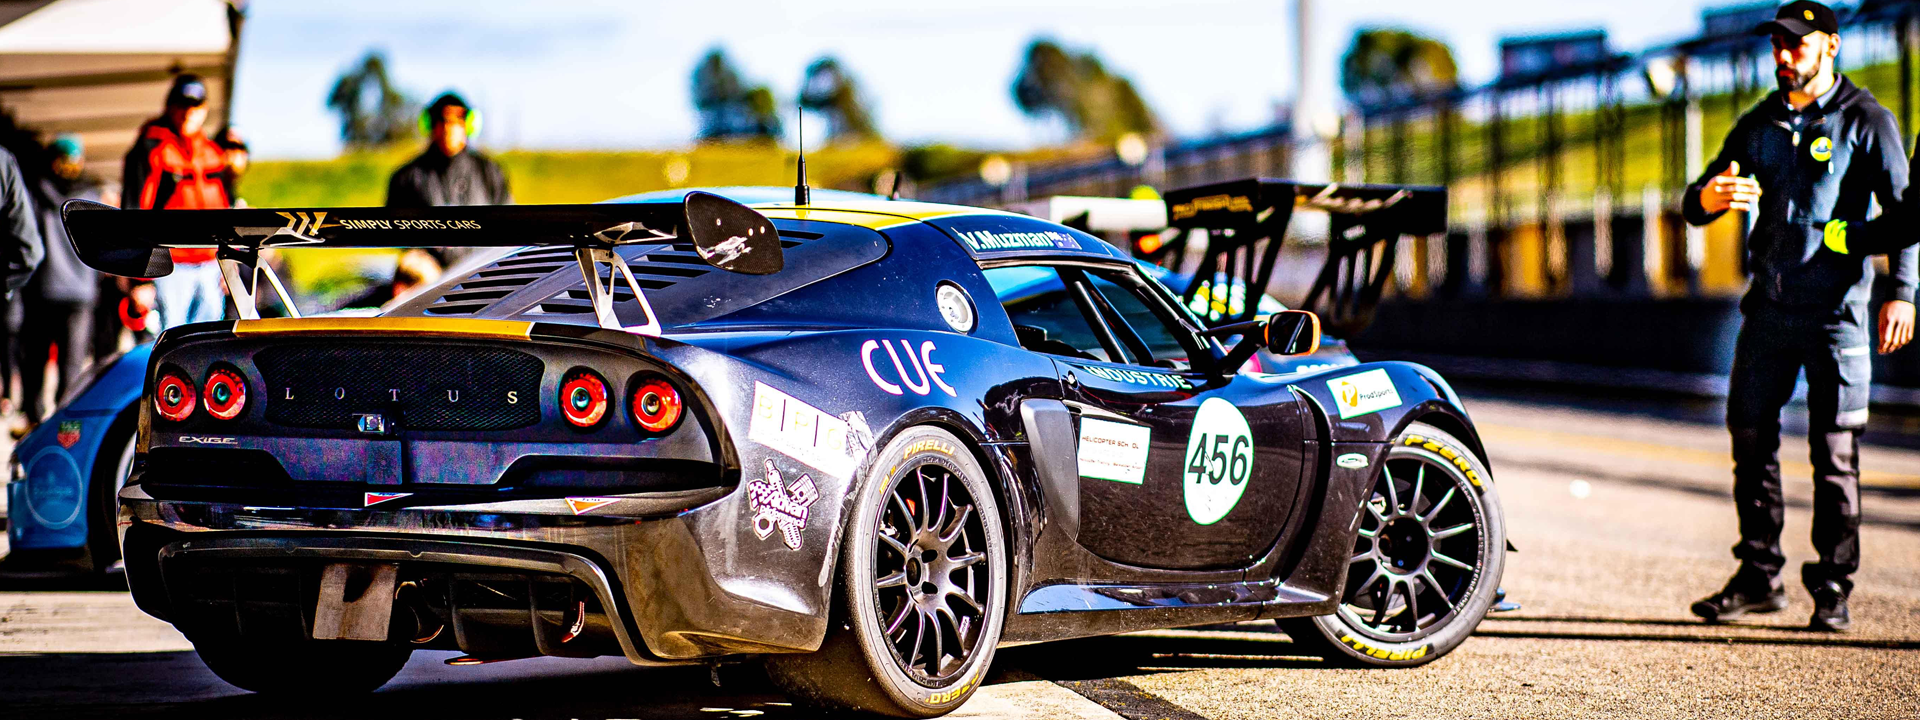 Sydney Motorsport Park Powered By The Australian Racing Drivers Club Sydney Motorsport Park Events And Online Shop